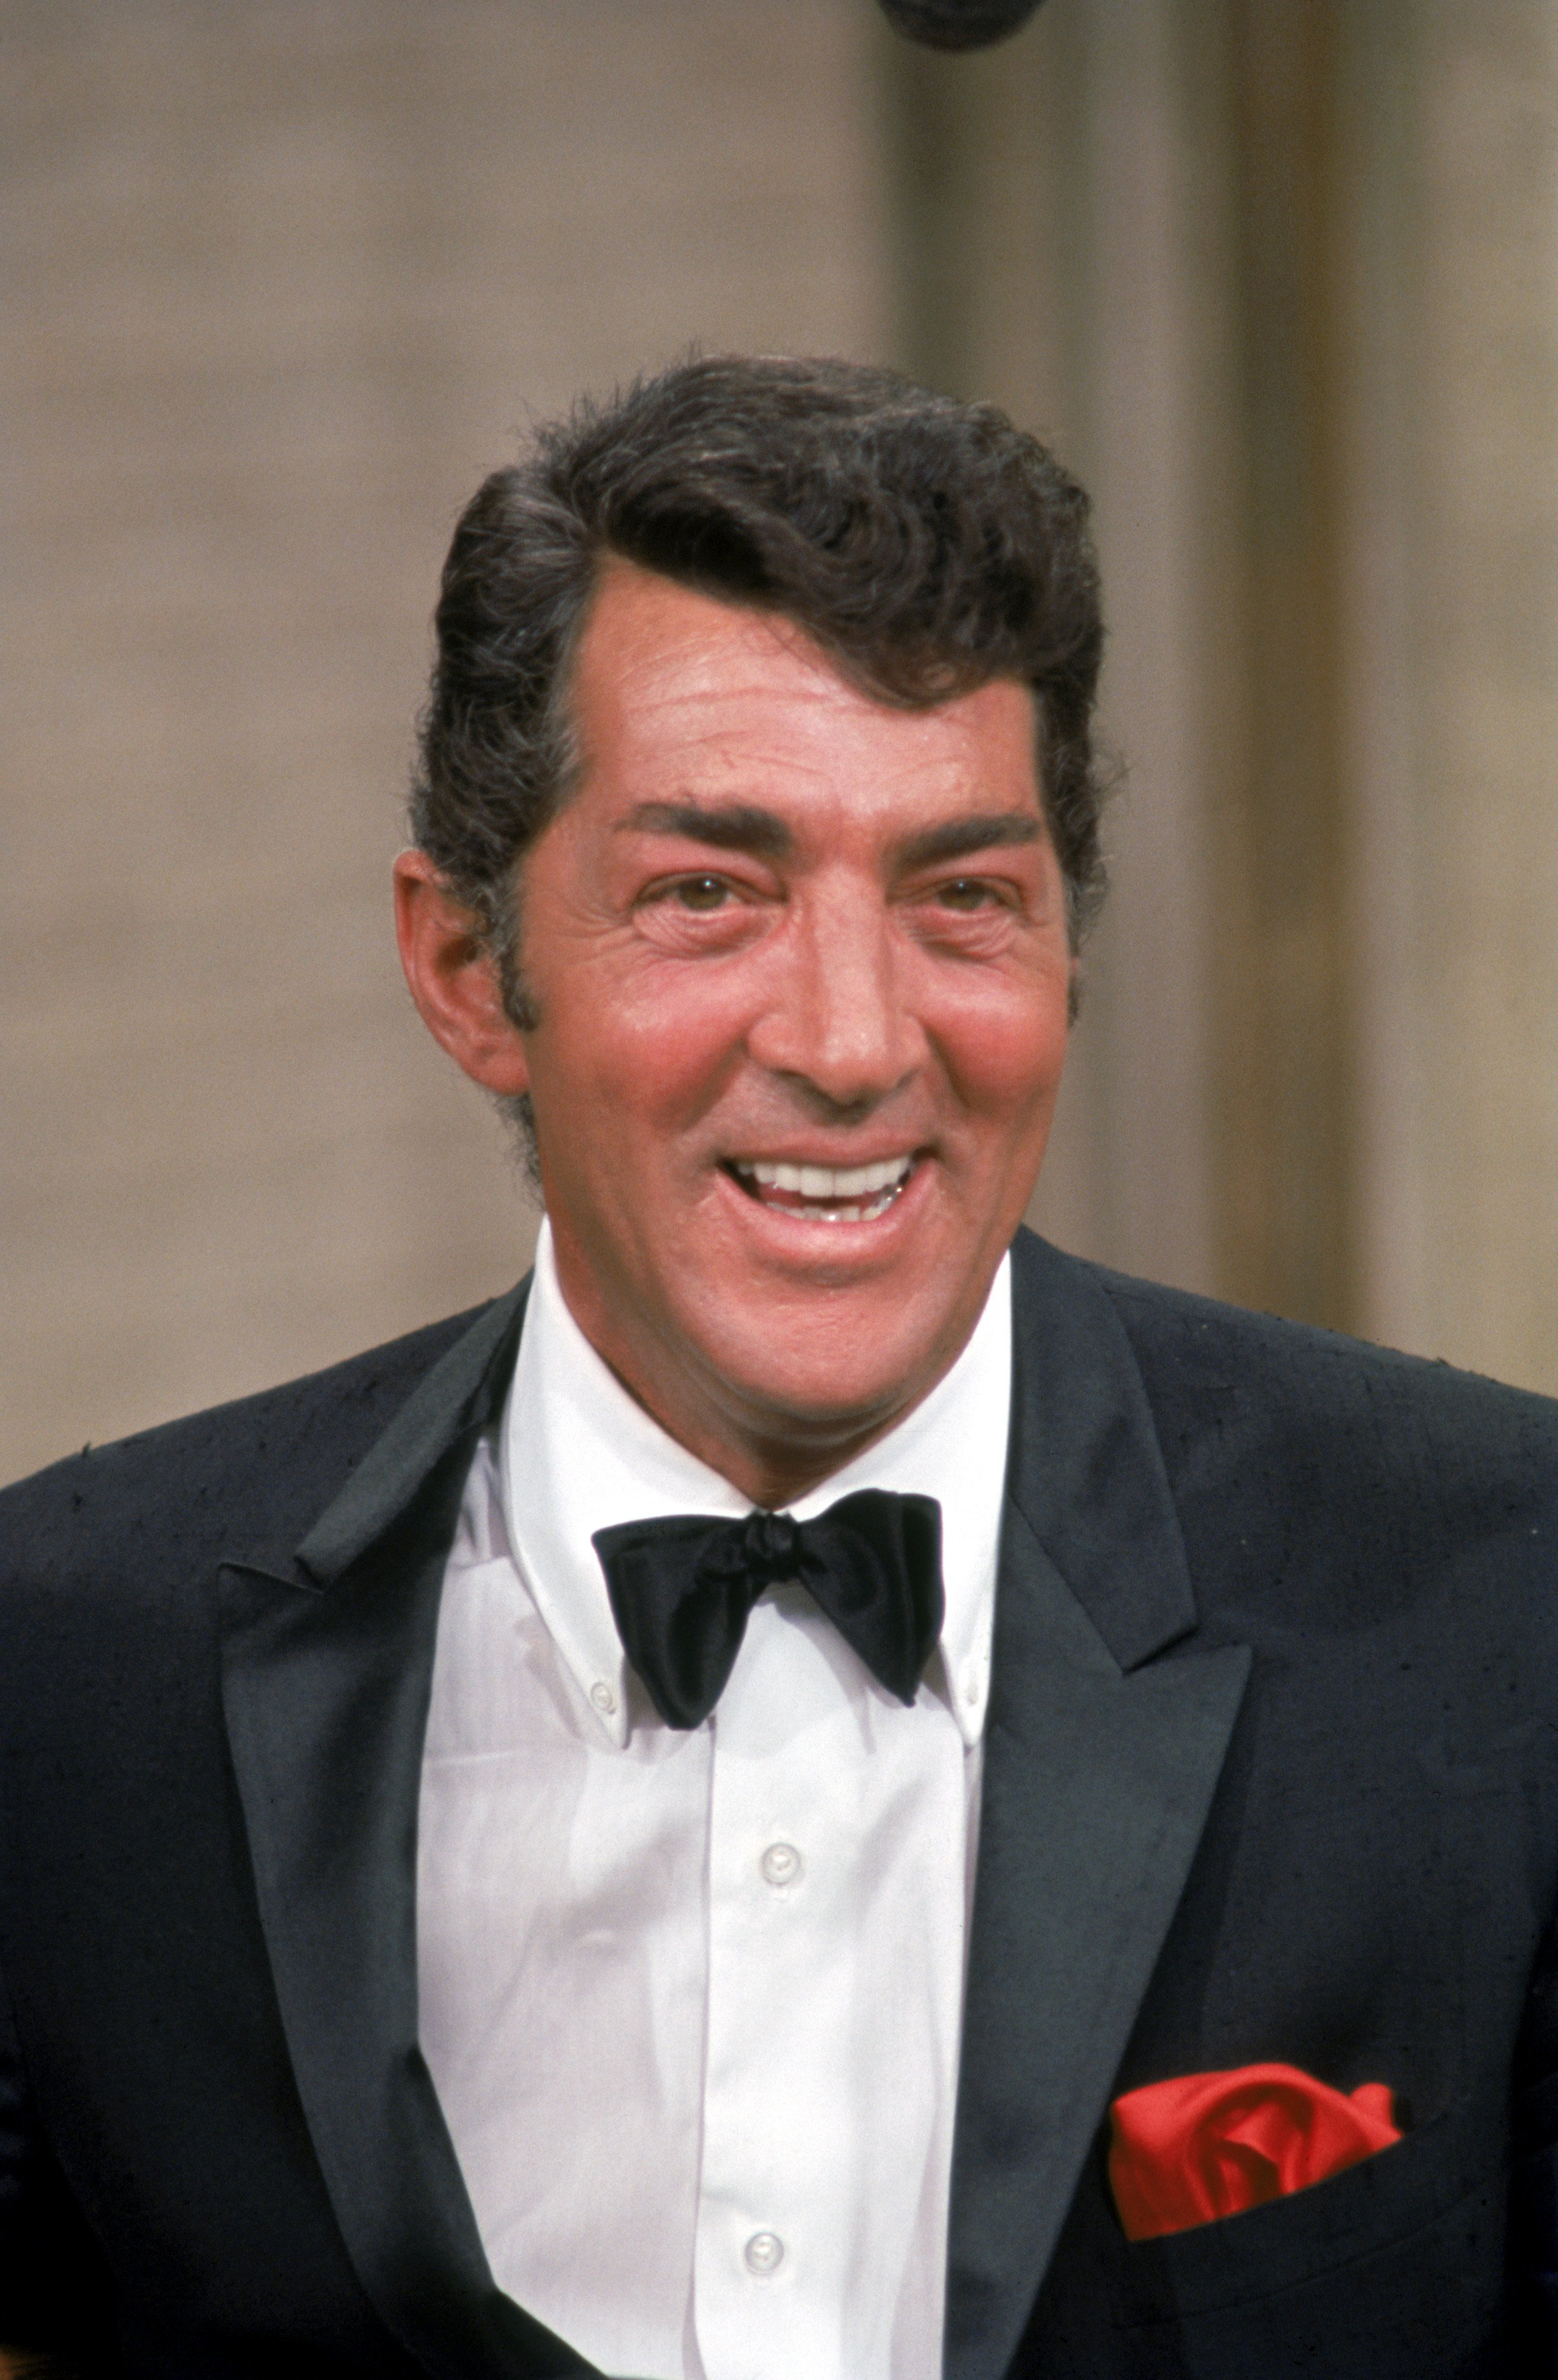 """Dean Martin on the set during filming of """"The Dean Martin show"""" in 1967. 